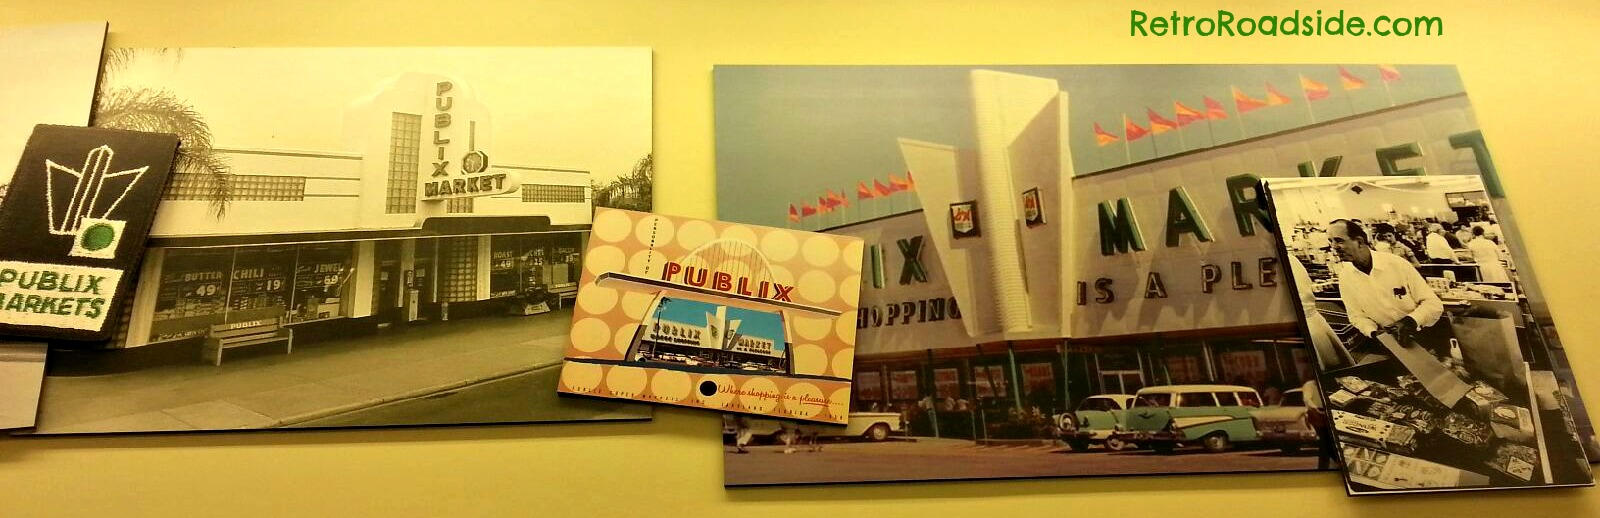 Interesting retro photos on the wall of my local Publix....